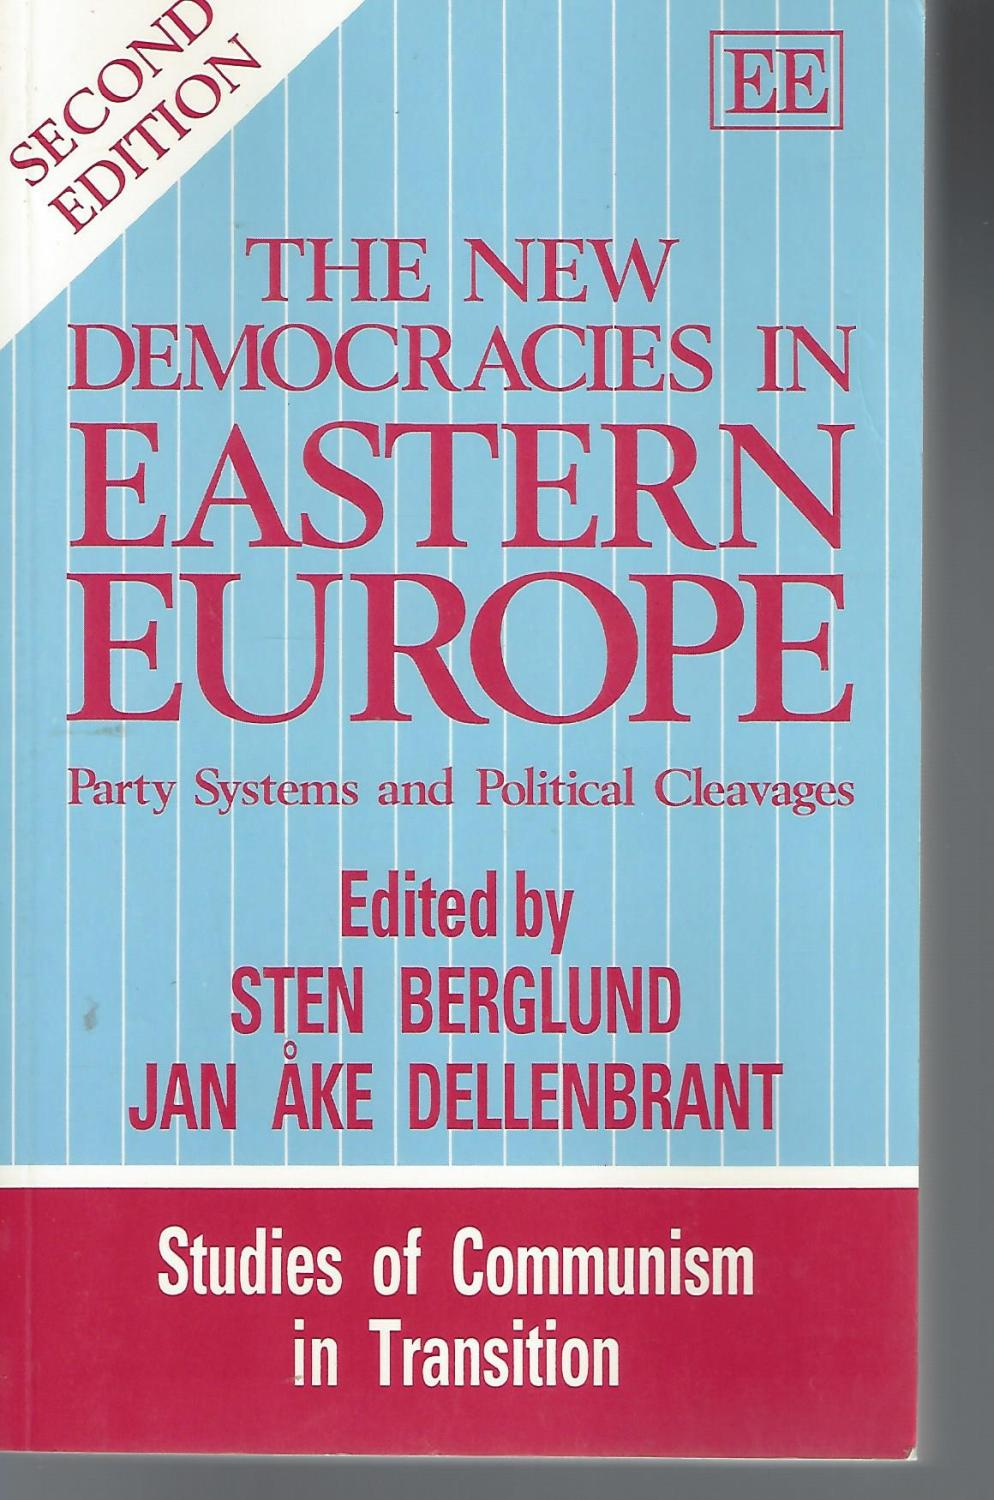 The New Democracies in Eastern Europe: Party Systems and Political Cleavages (Studies of Communism in Transition series) - Sten Berglund; Jan Ake Dellenbrant; Sten Berglund [Editor]; Jan Ake Dellenbrant [Editor];